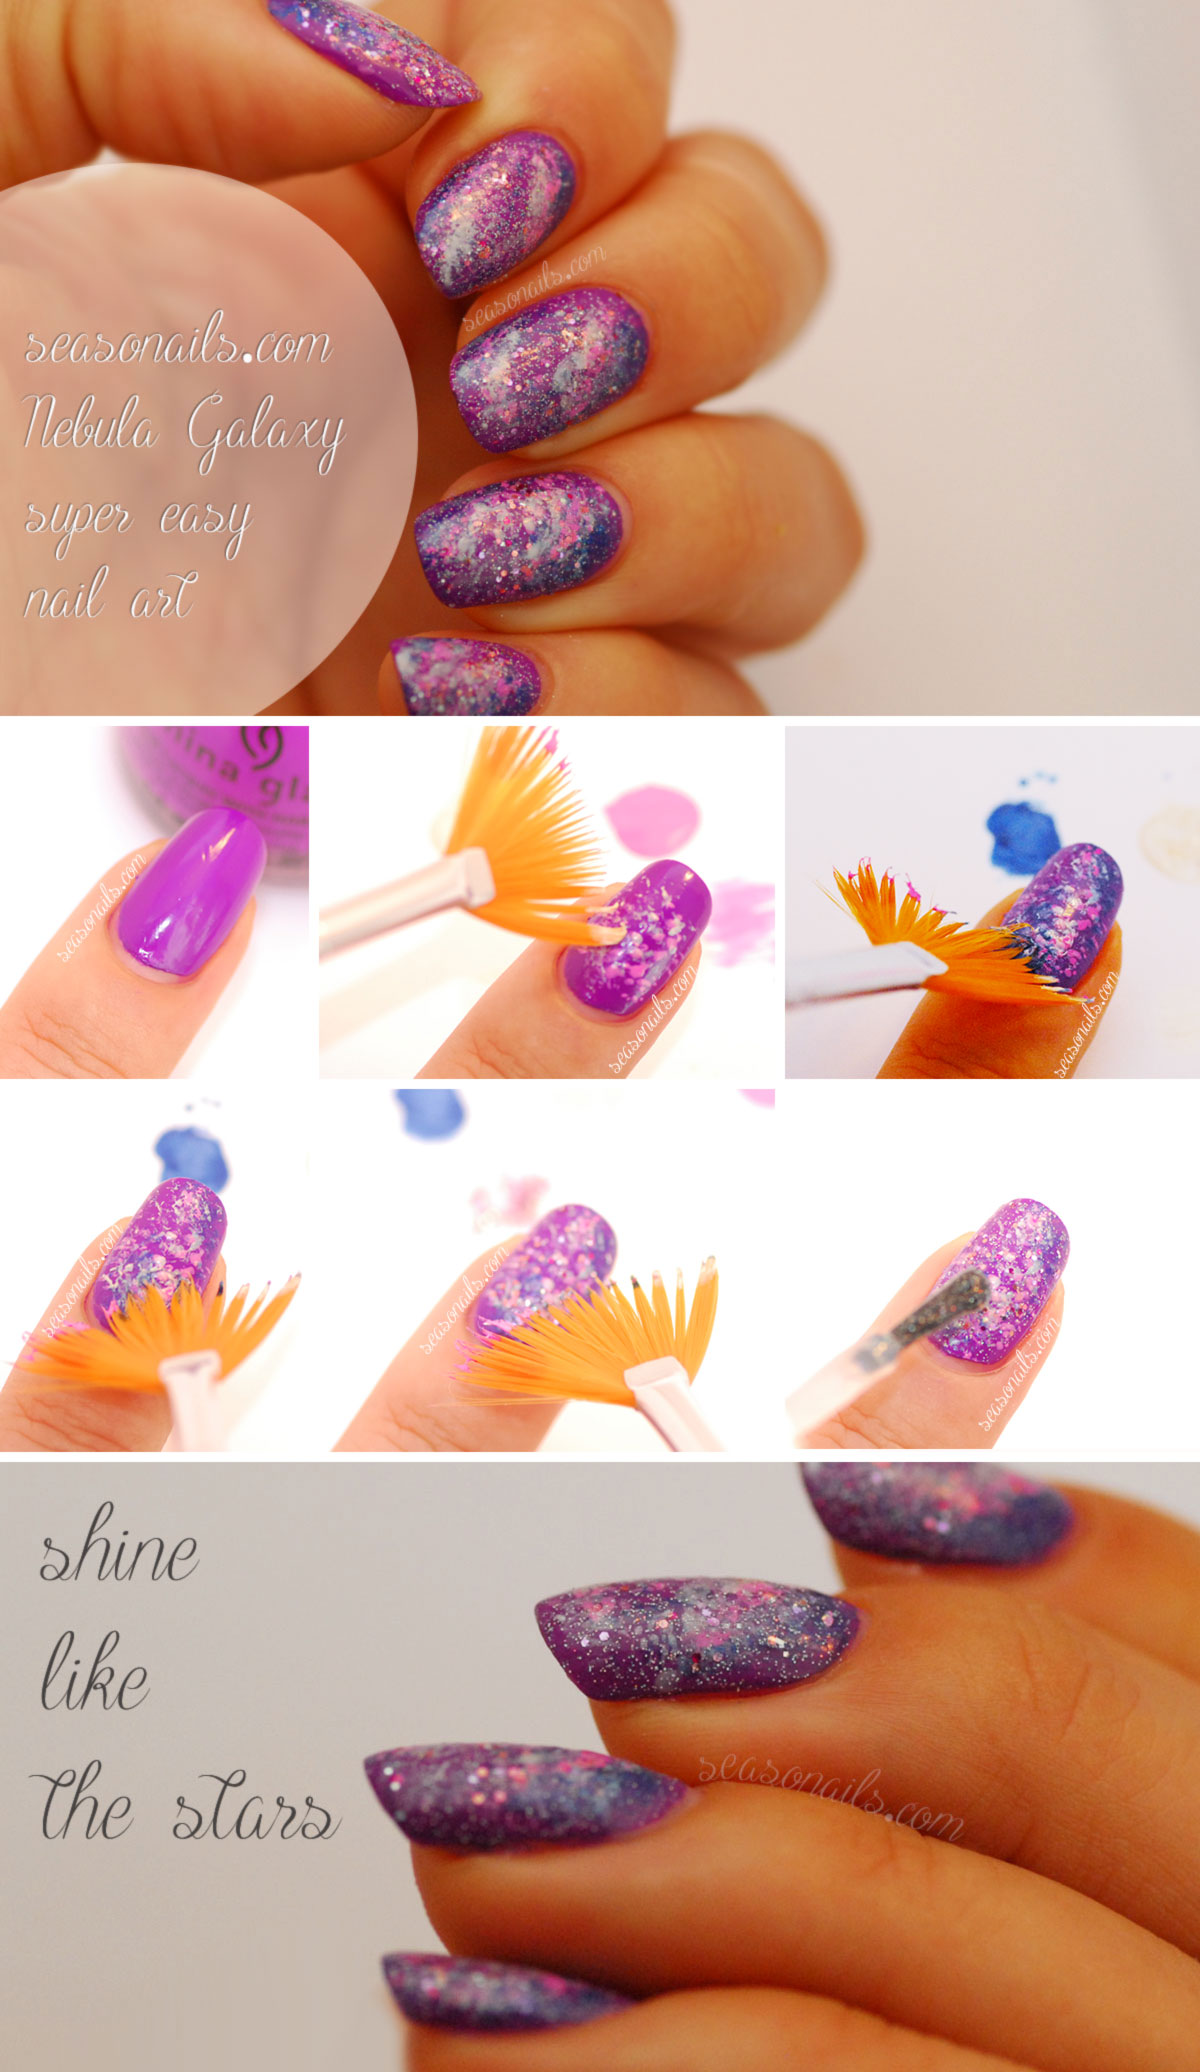 easy nail art how to Galaxy Nails Seasonails Tutorial